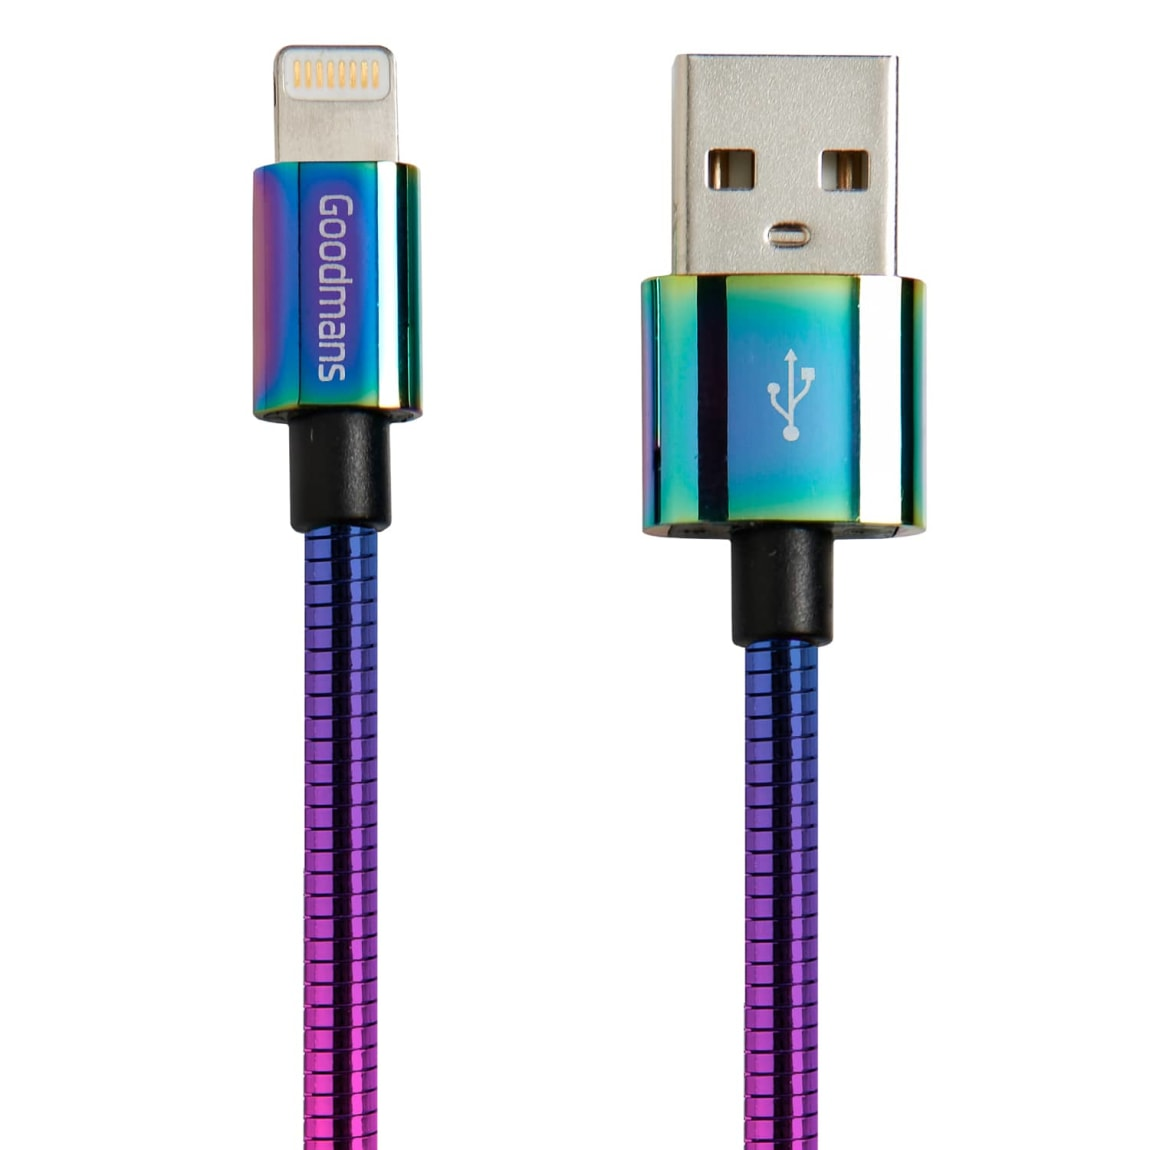 Goodmans Lightning Metal Charging Cable - Iridescent